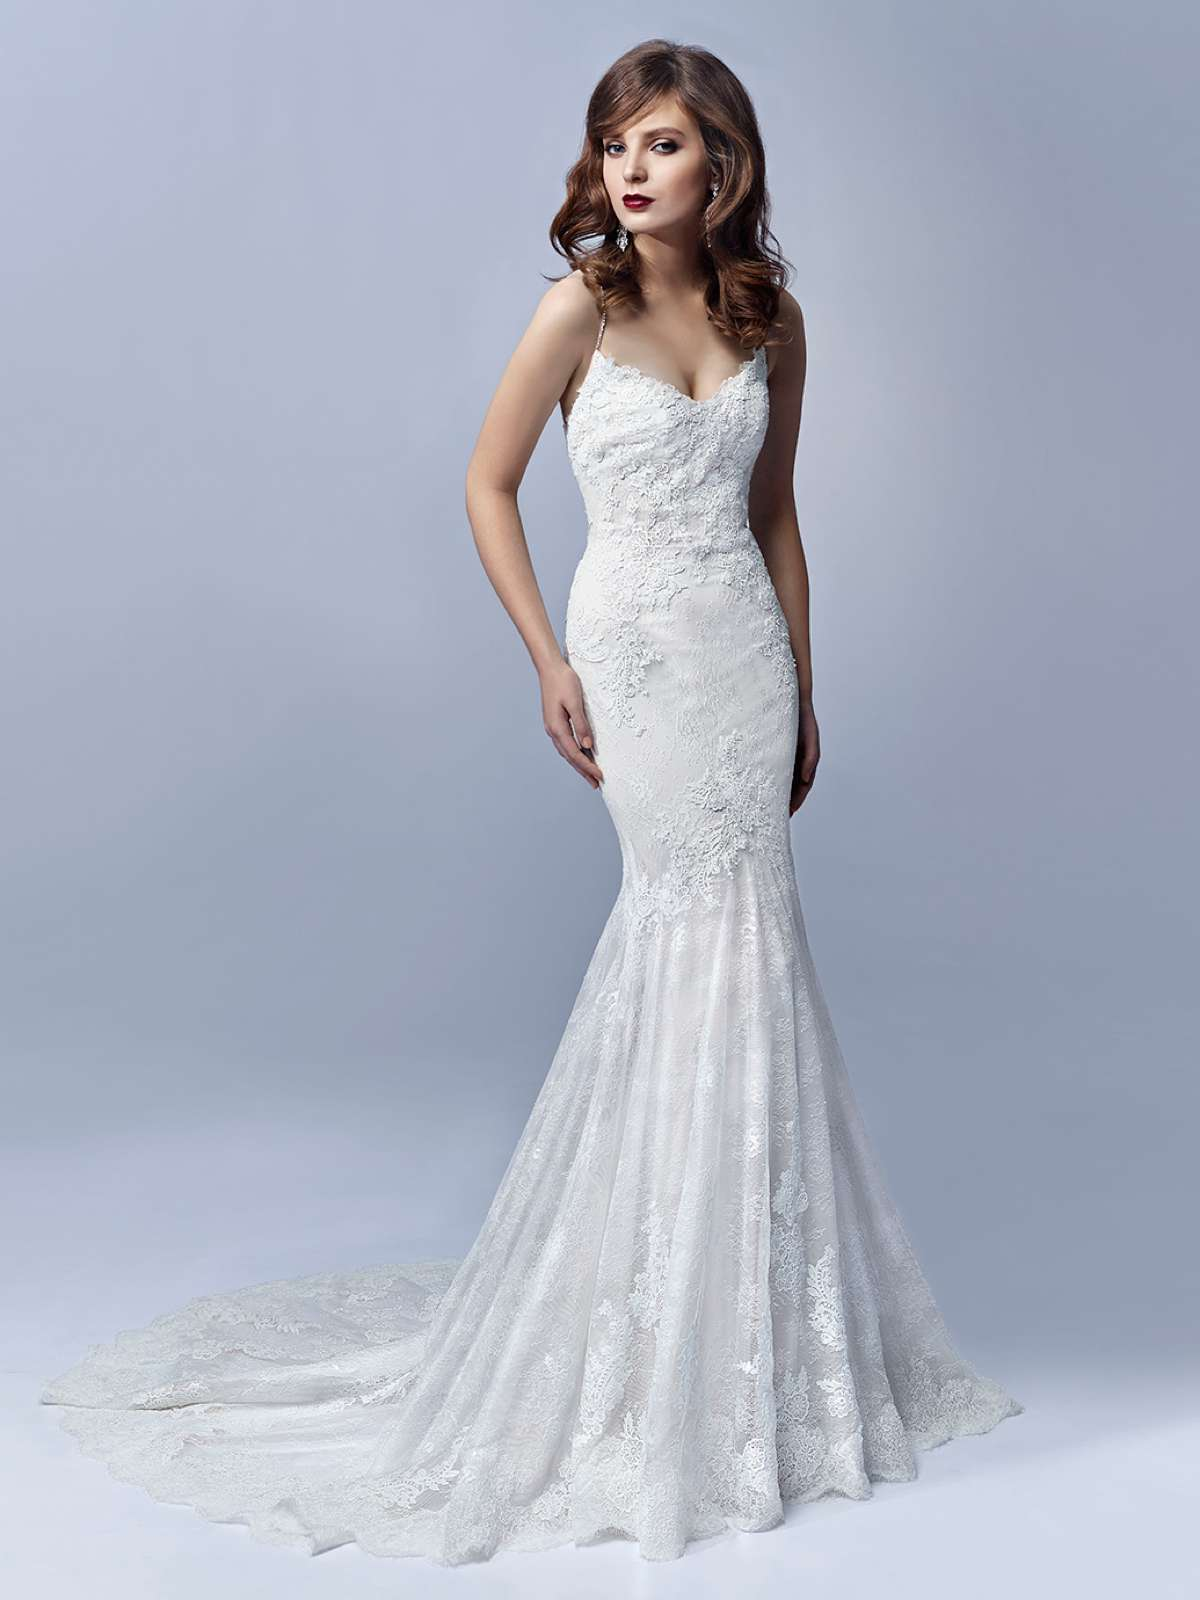 Sneak Preview! 2017 Enzoani Collections  Love Our Wedding. Cheap Wedding Dresses With Bling. Beach Wedding Dresses Grecian Style. Short Wedding Dresses Dillards. Wedding Dresses Ball Gown 2014. Pink Wedding Dress Size 16. Vintage Style Wedding Dresses Exeter. Trumpet Wedding Dresses For Sale. Blush Wedding Dress Bridal Party